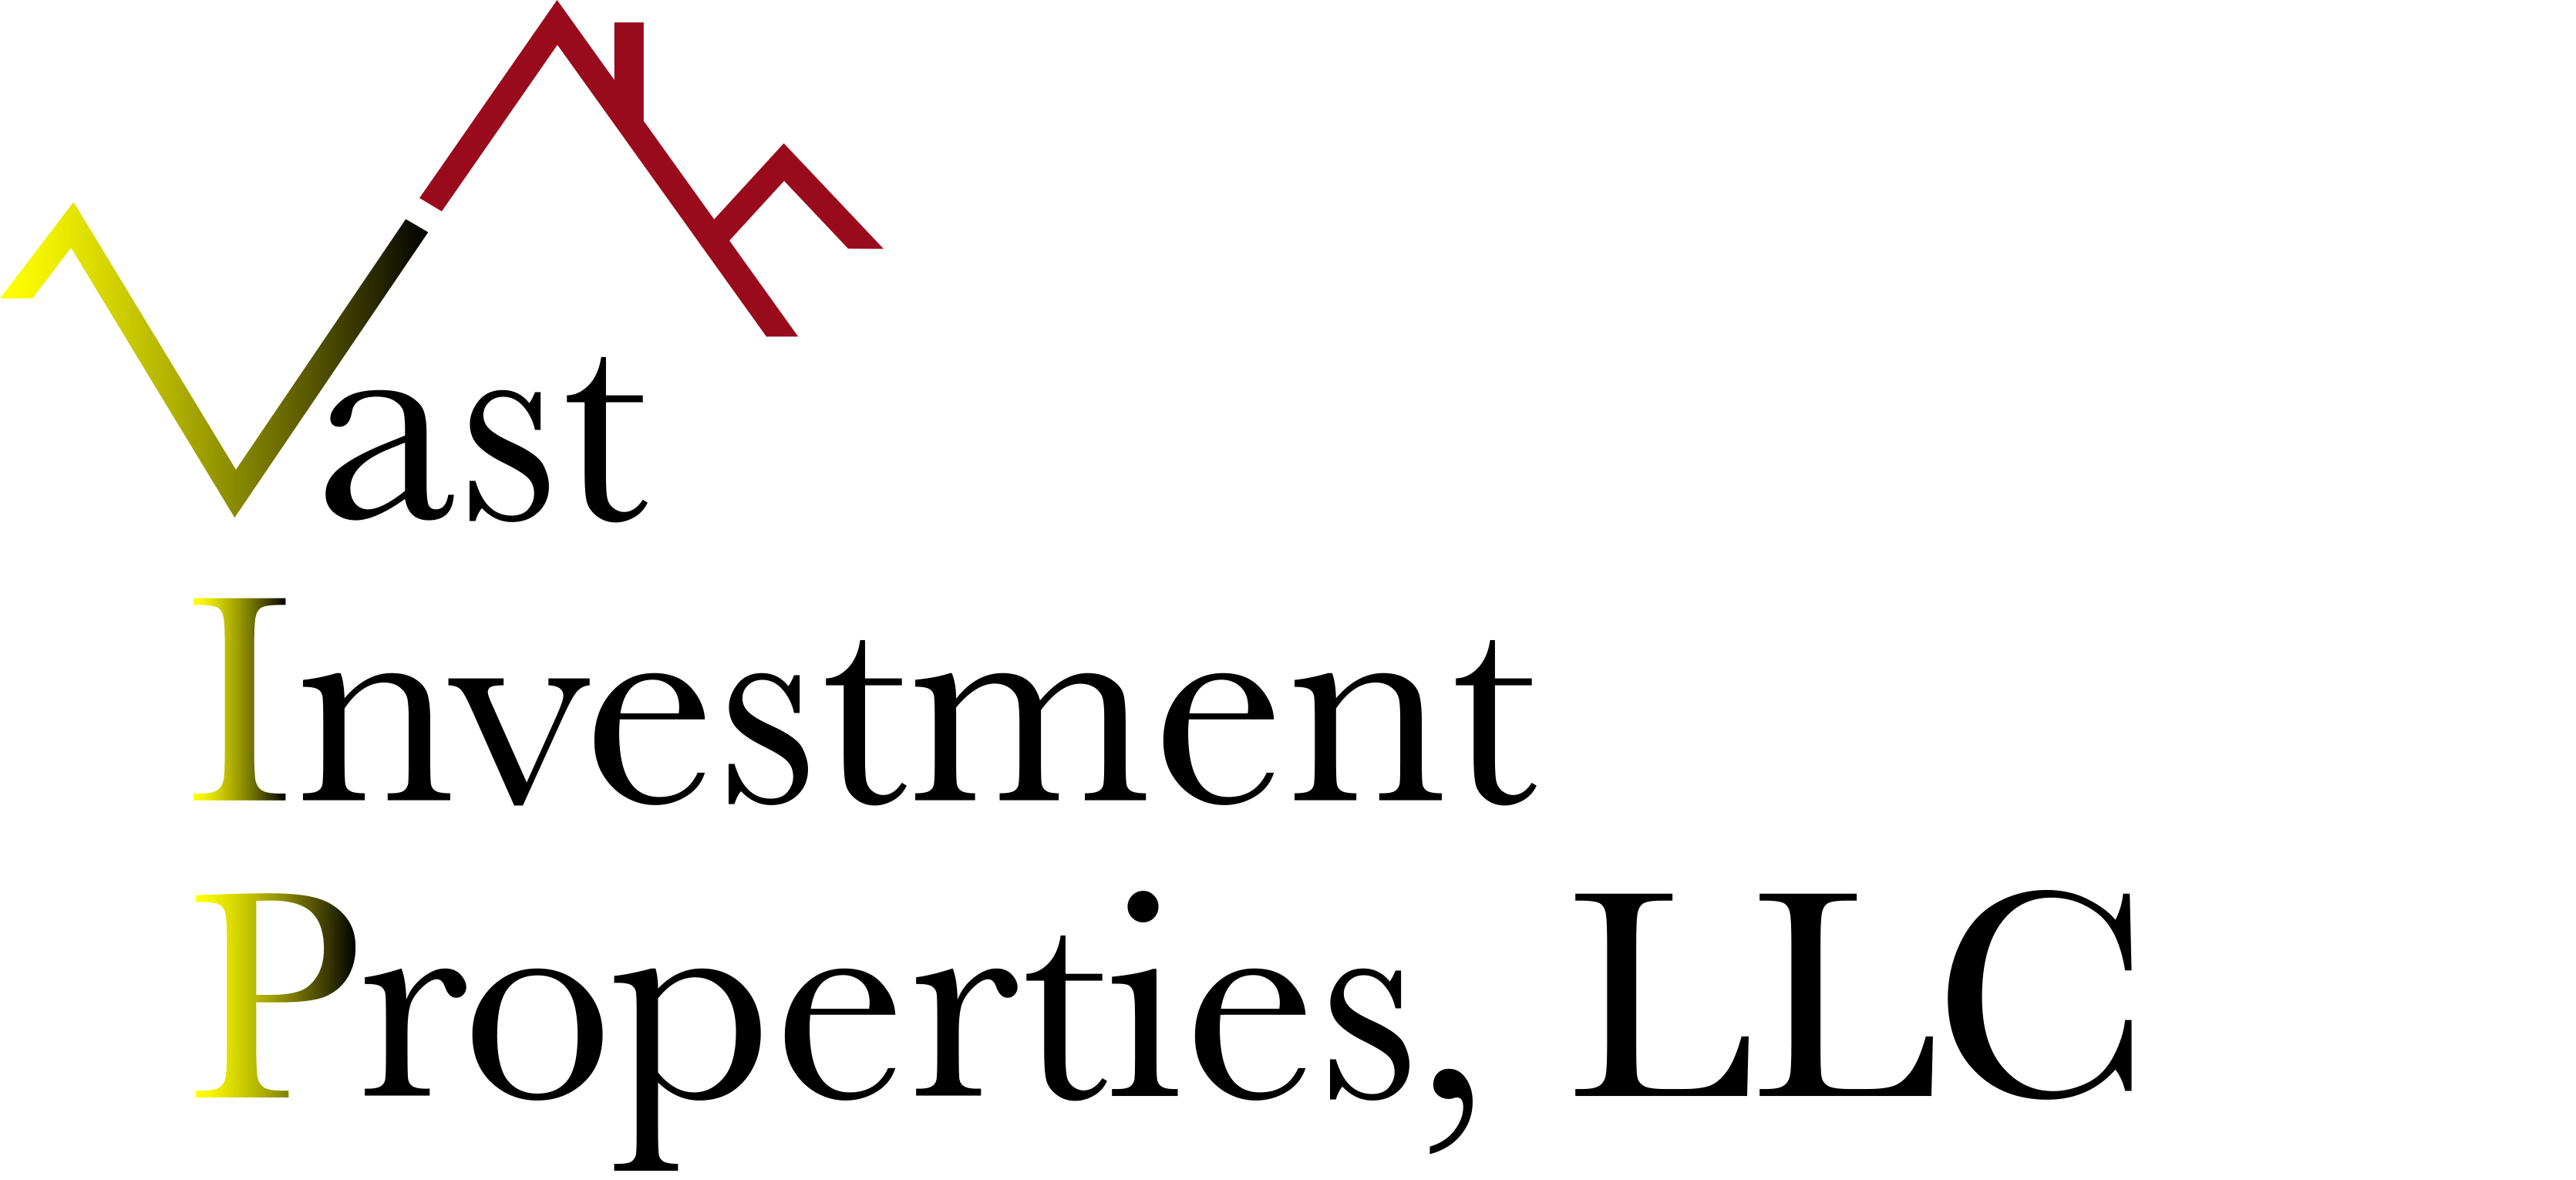 Vast Investment Properties